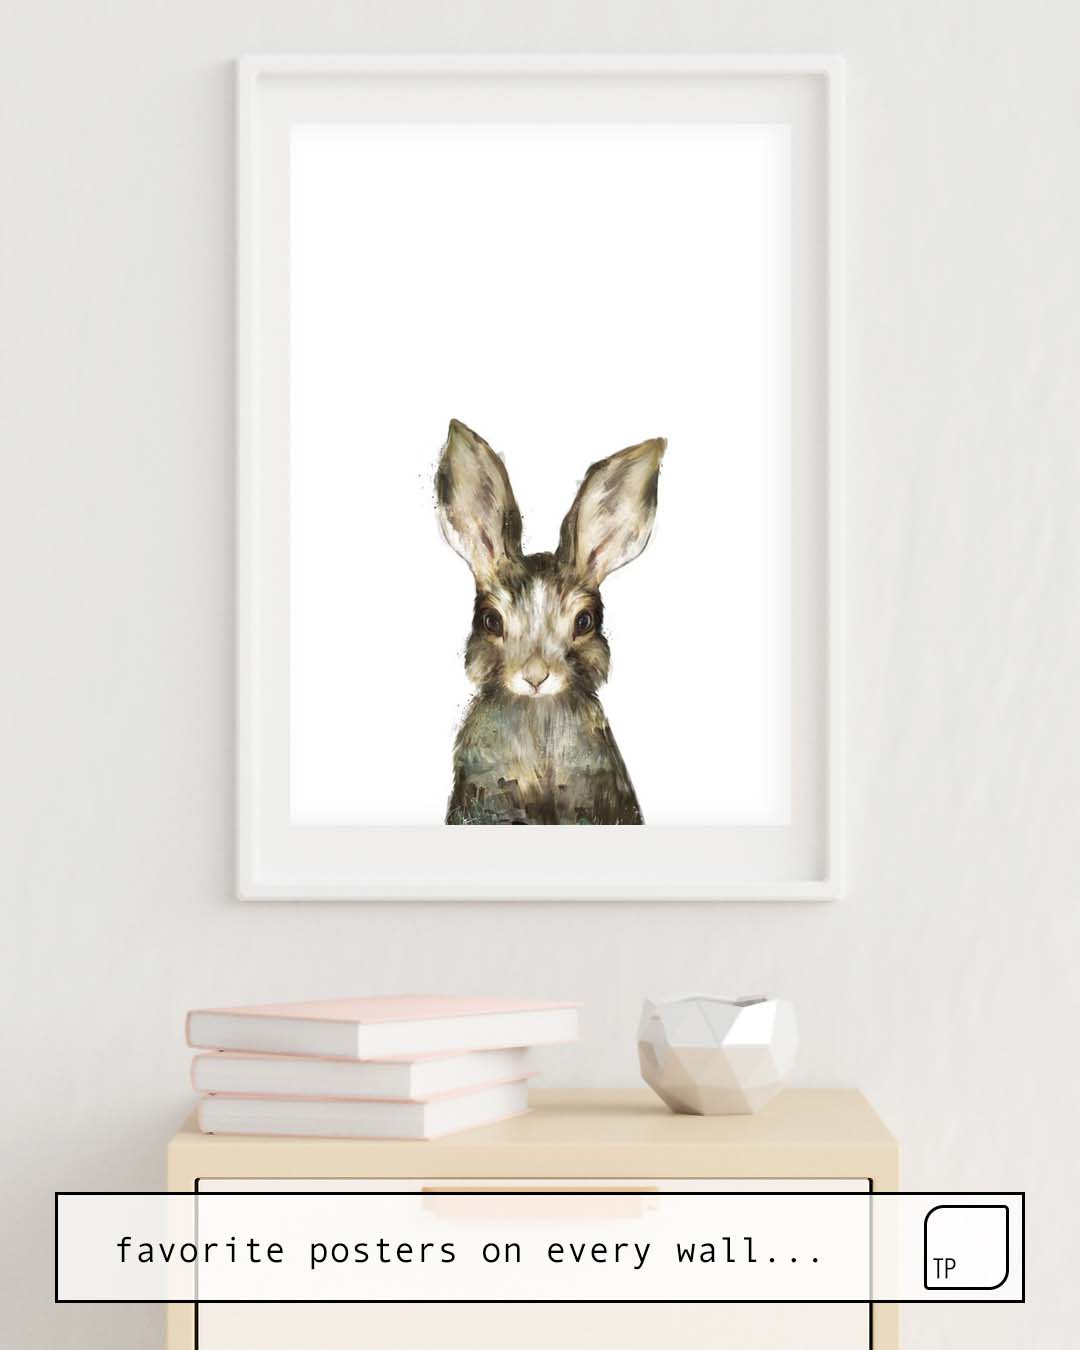 The photo shows an example of furnishing with the motif LITTLE RABBIT by Amy Hamilton as mural